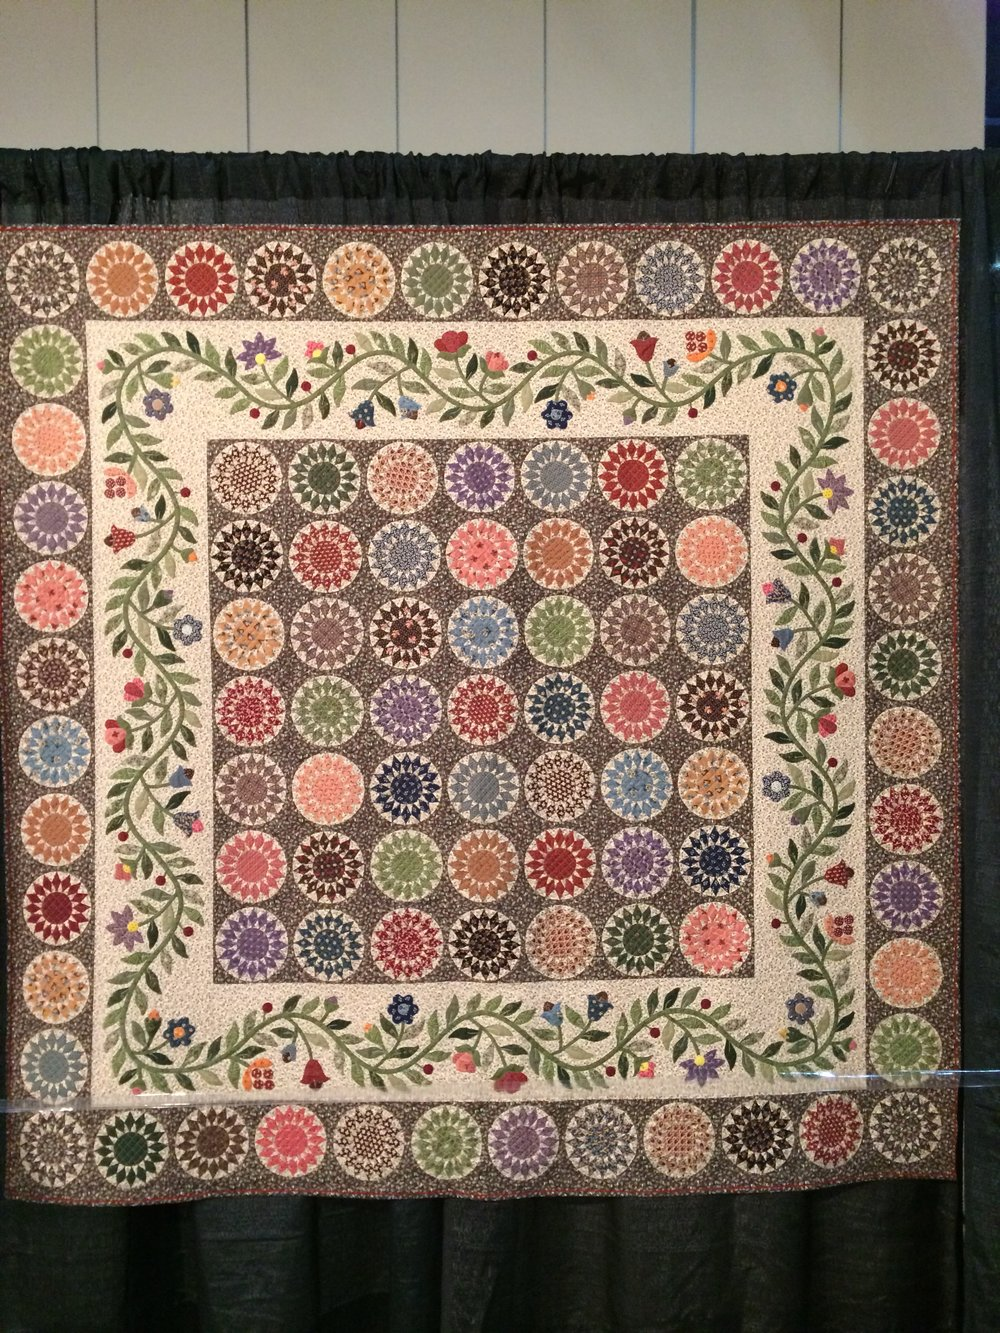 Sunflower Spirit  by Lauren Devantier, quilted by Norma Chapin